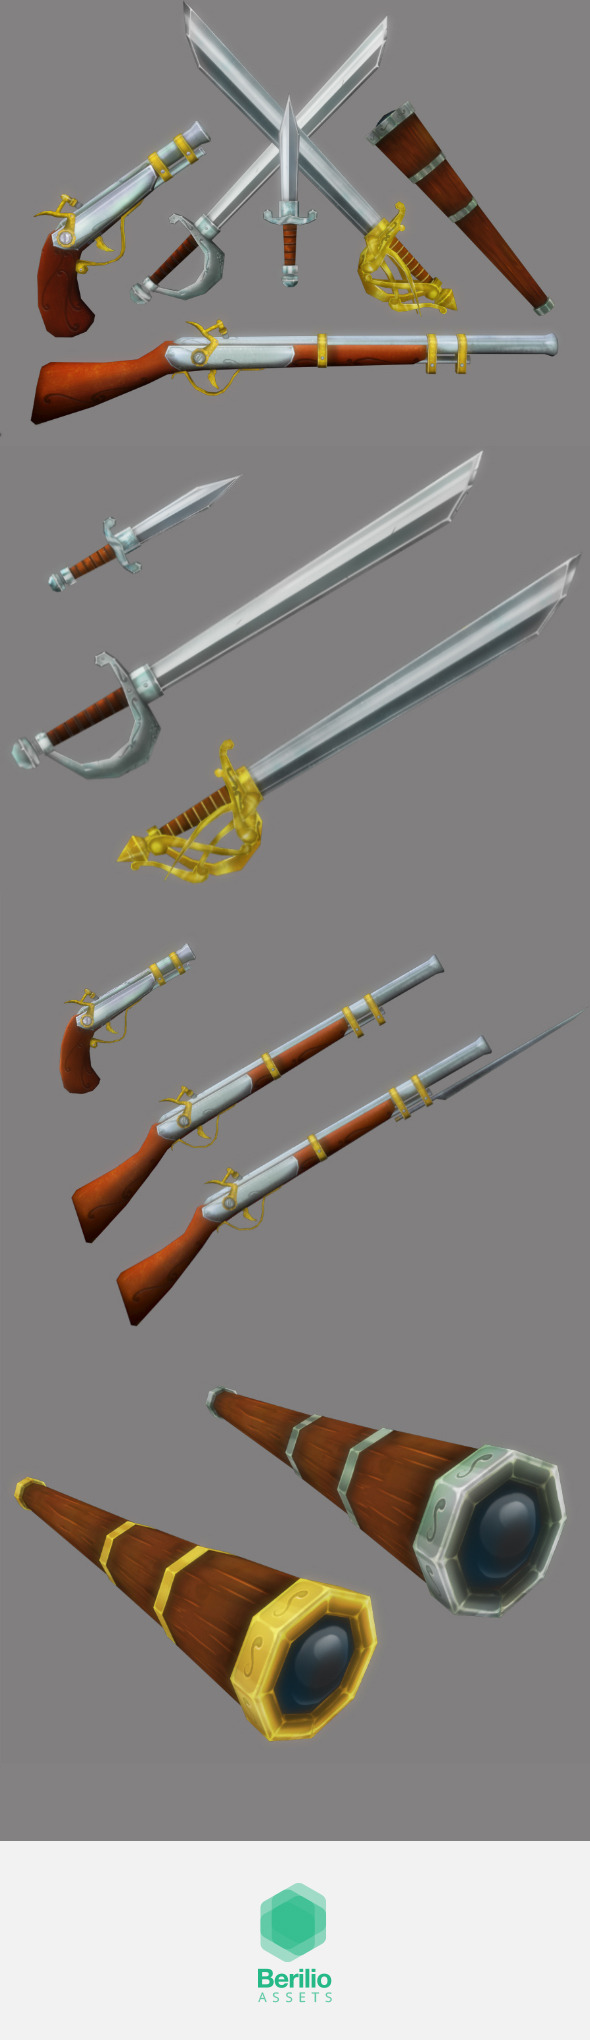 Low Poly Cartoonish Pirate Weapons Kit - 3DOcean Item for Sale